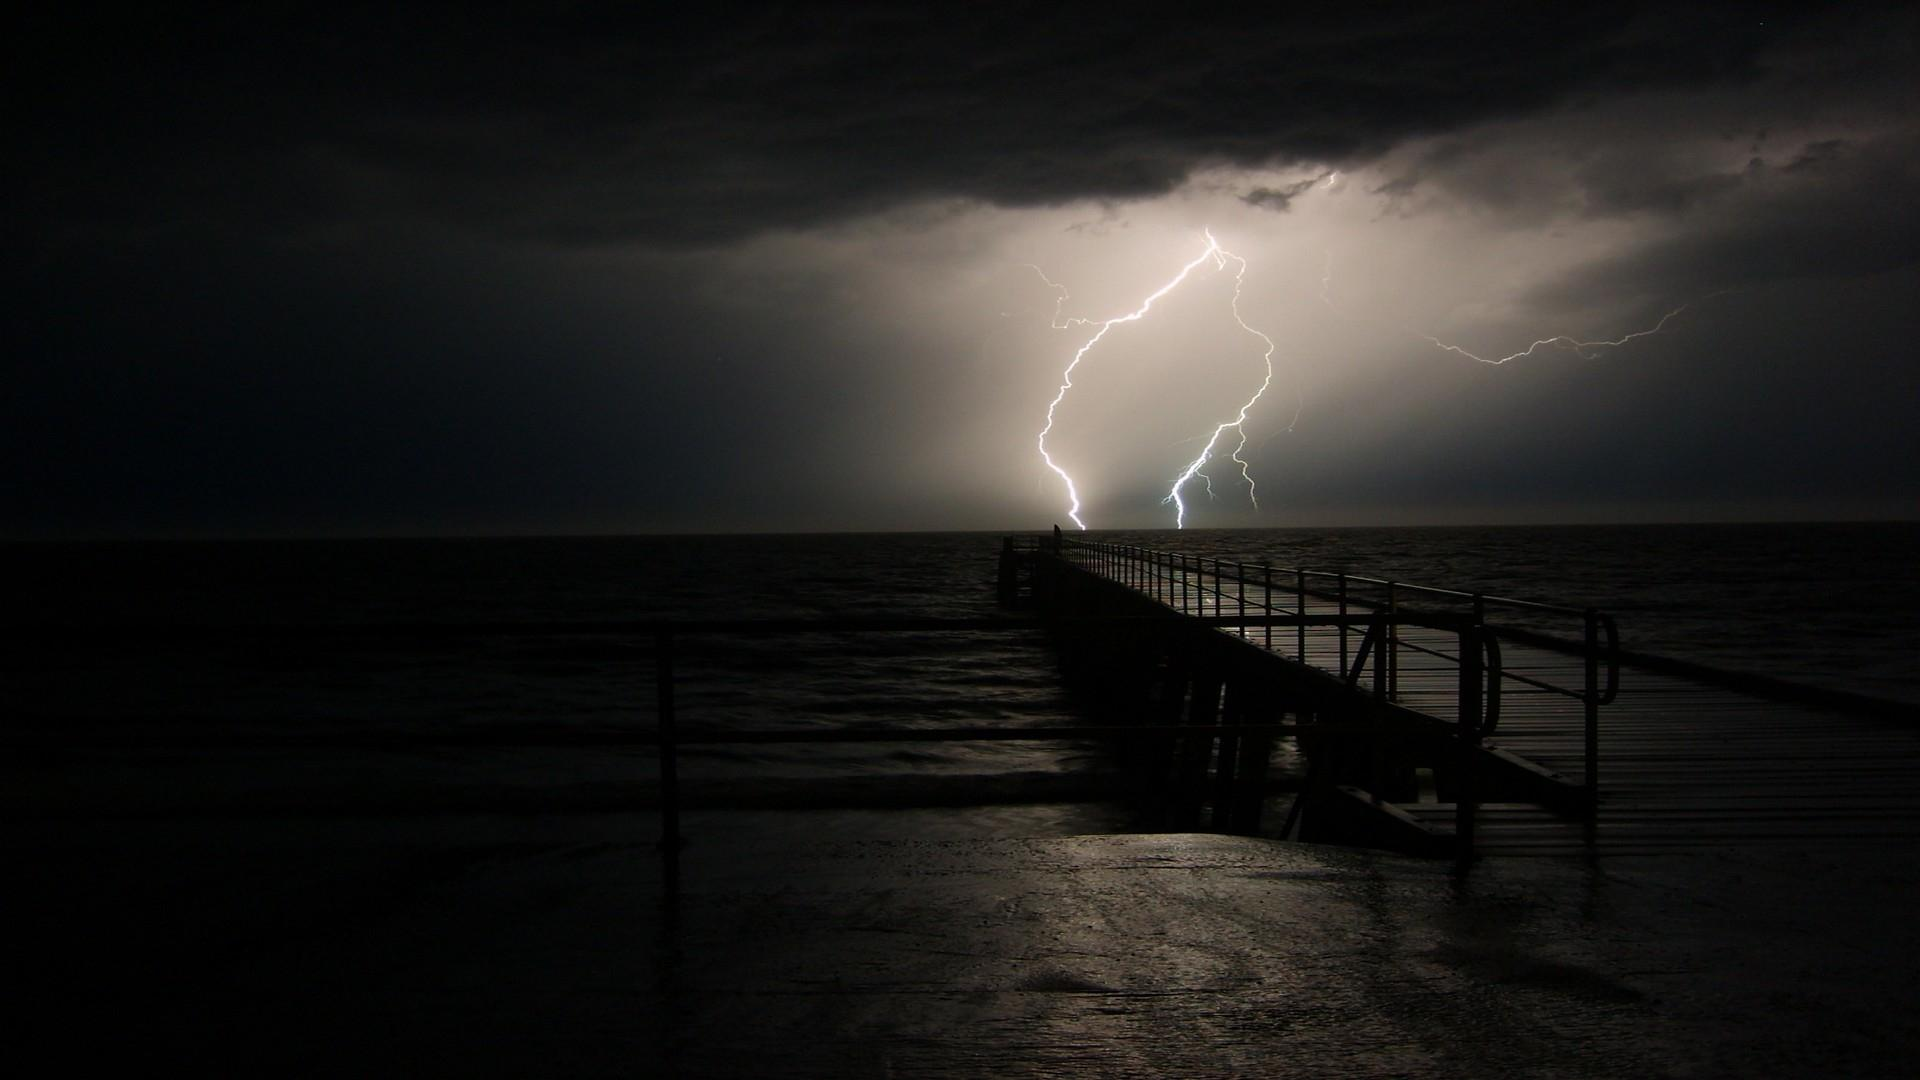 Lightning Photography wallpapers HD quality